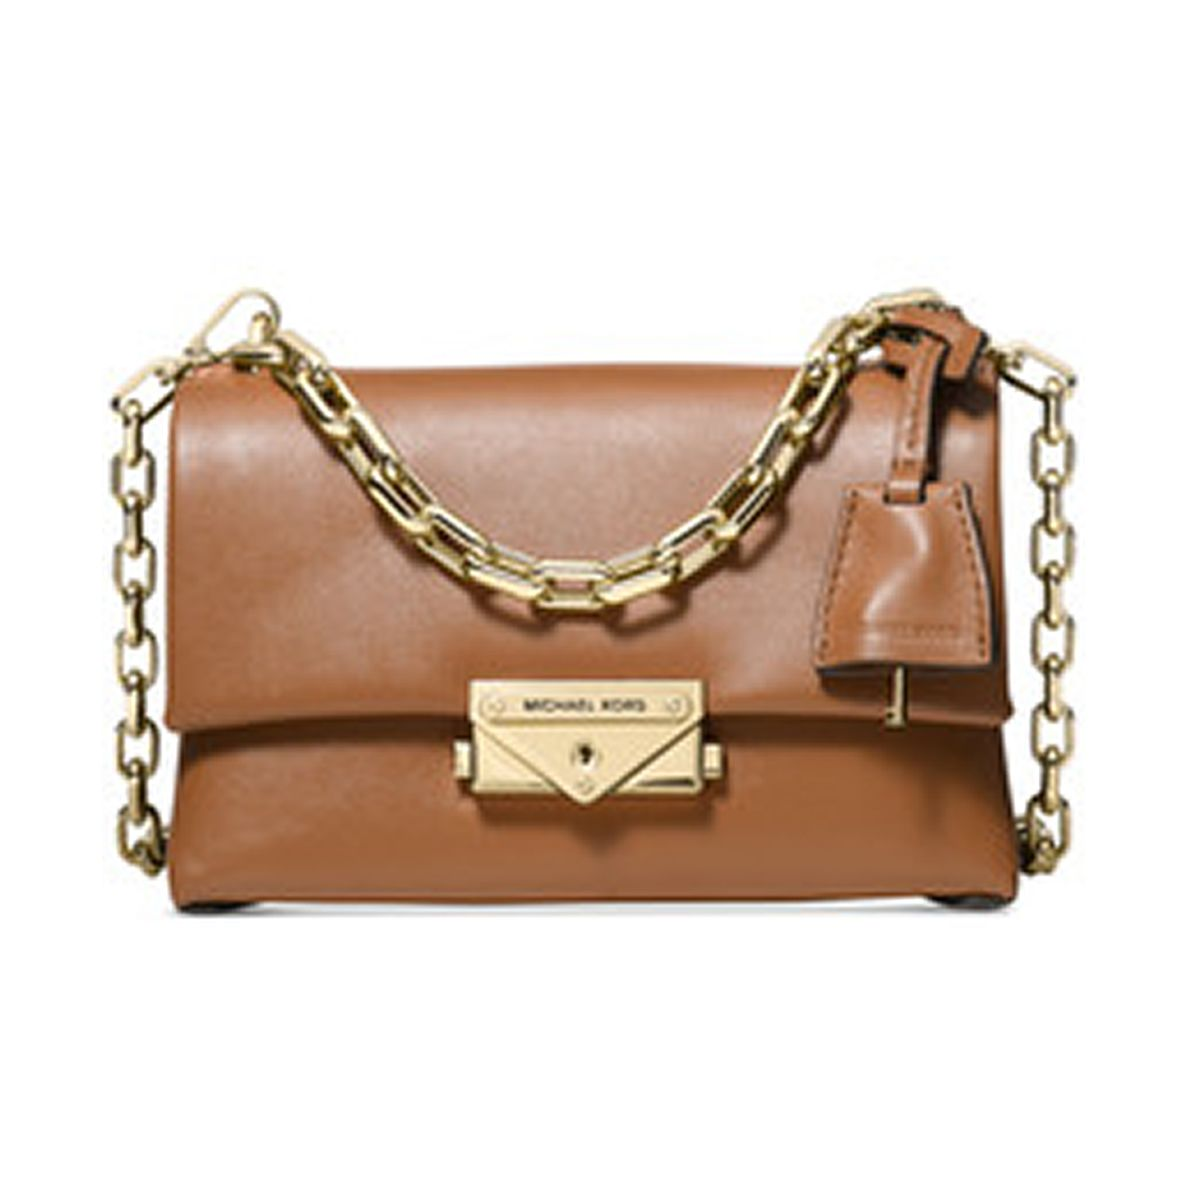 f0c4e7cb75 Handbags. Handbags · New Arrivals